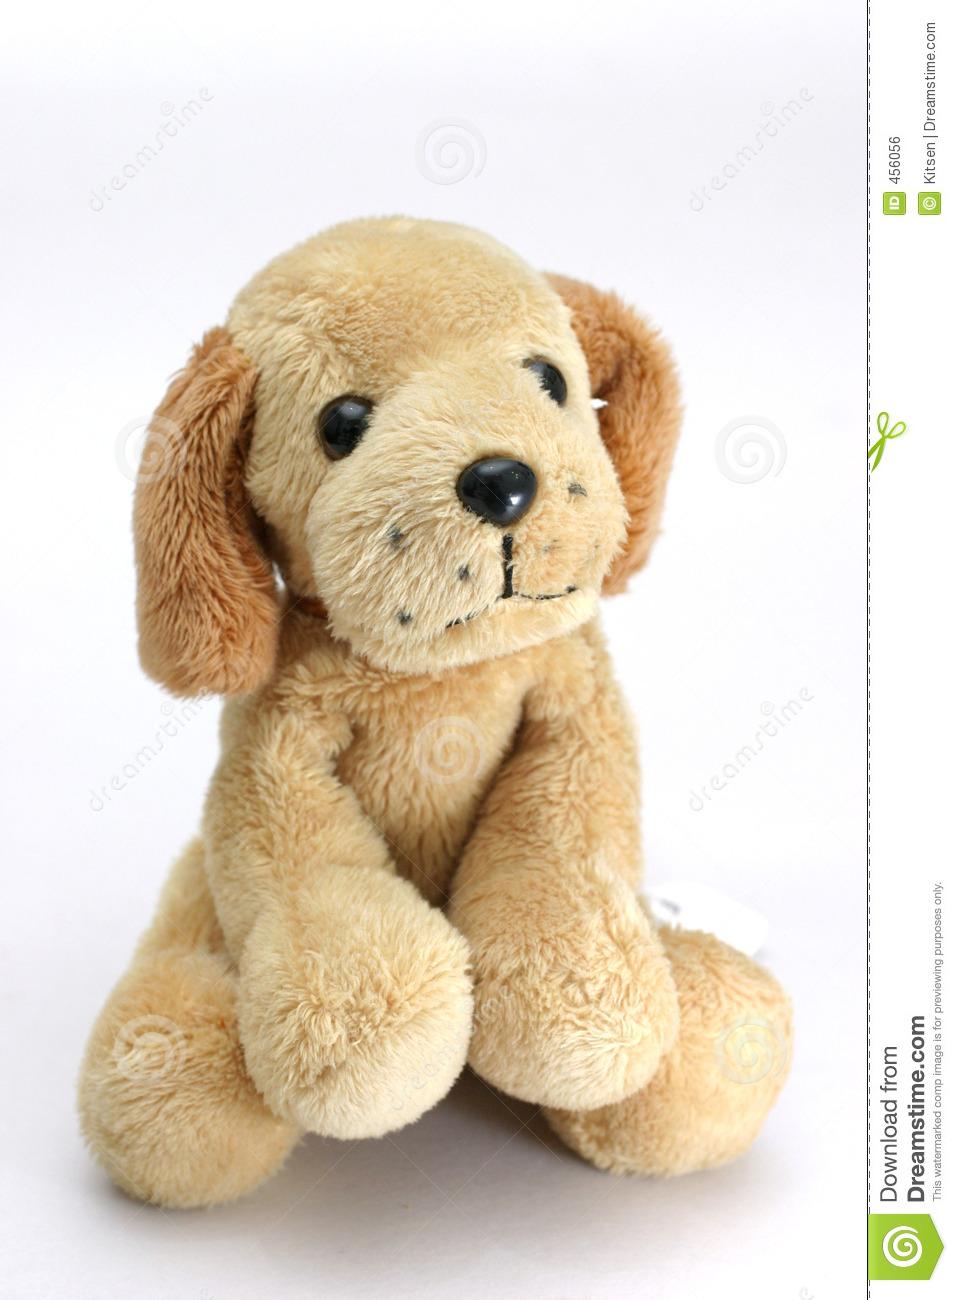 Soft toys clipart free download.